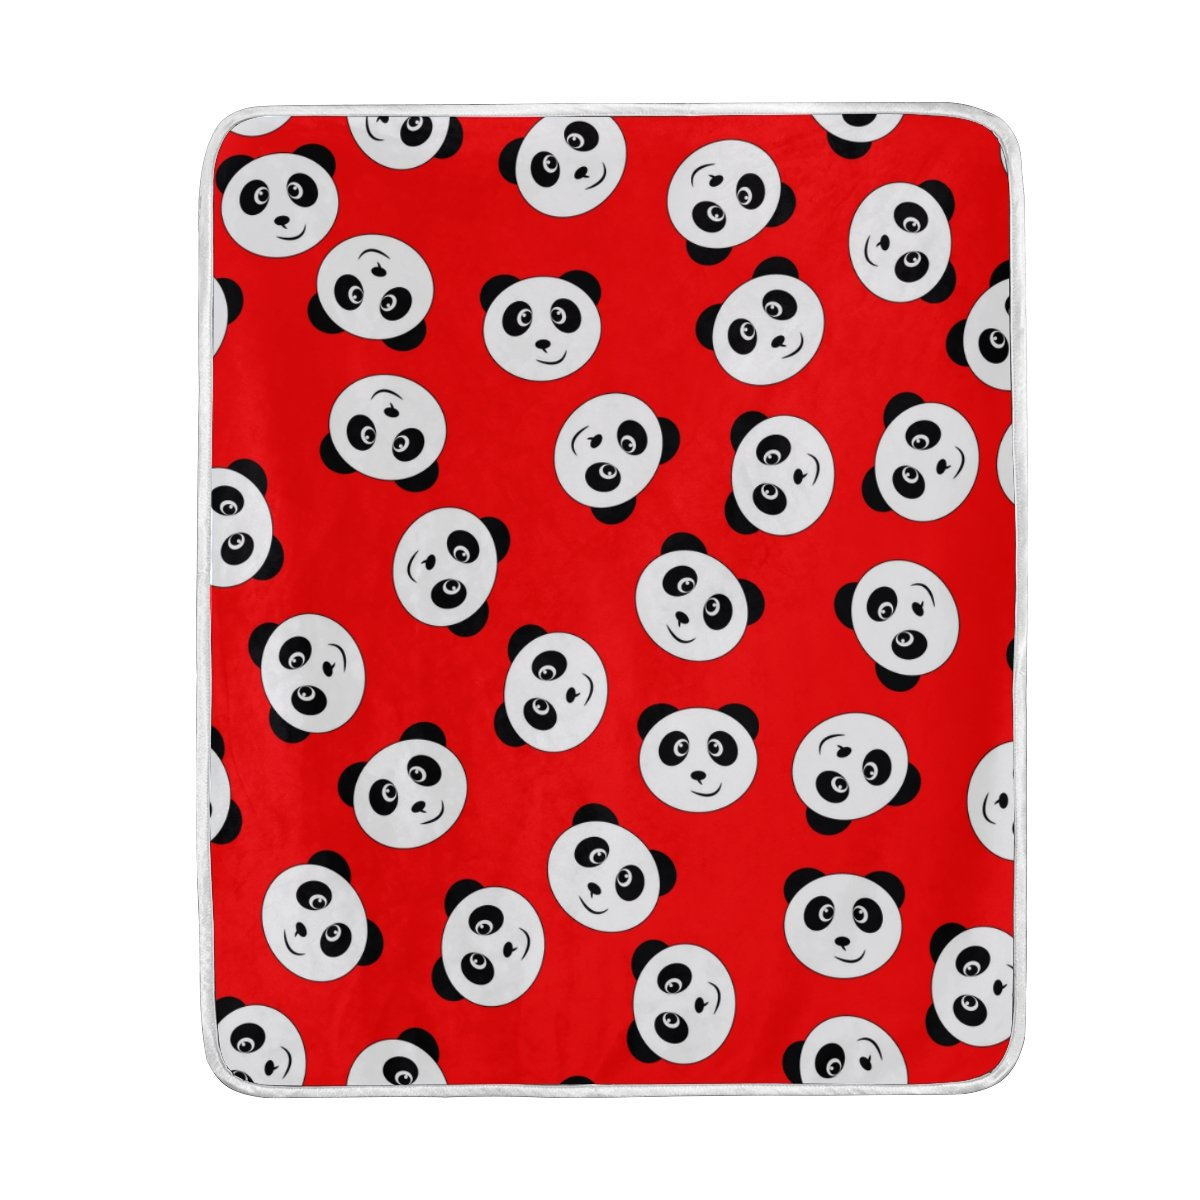 My Little Nest Warm Throw Blanket Smile Panda Red Lightweight Microfiber Soft Blanket Everyday Use for Bed Couch Sofa 50'' x 60''